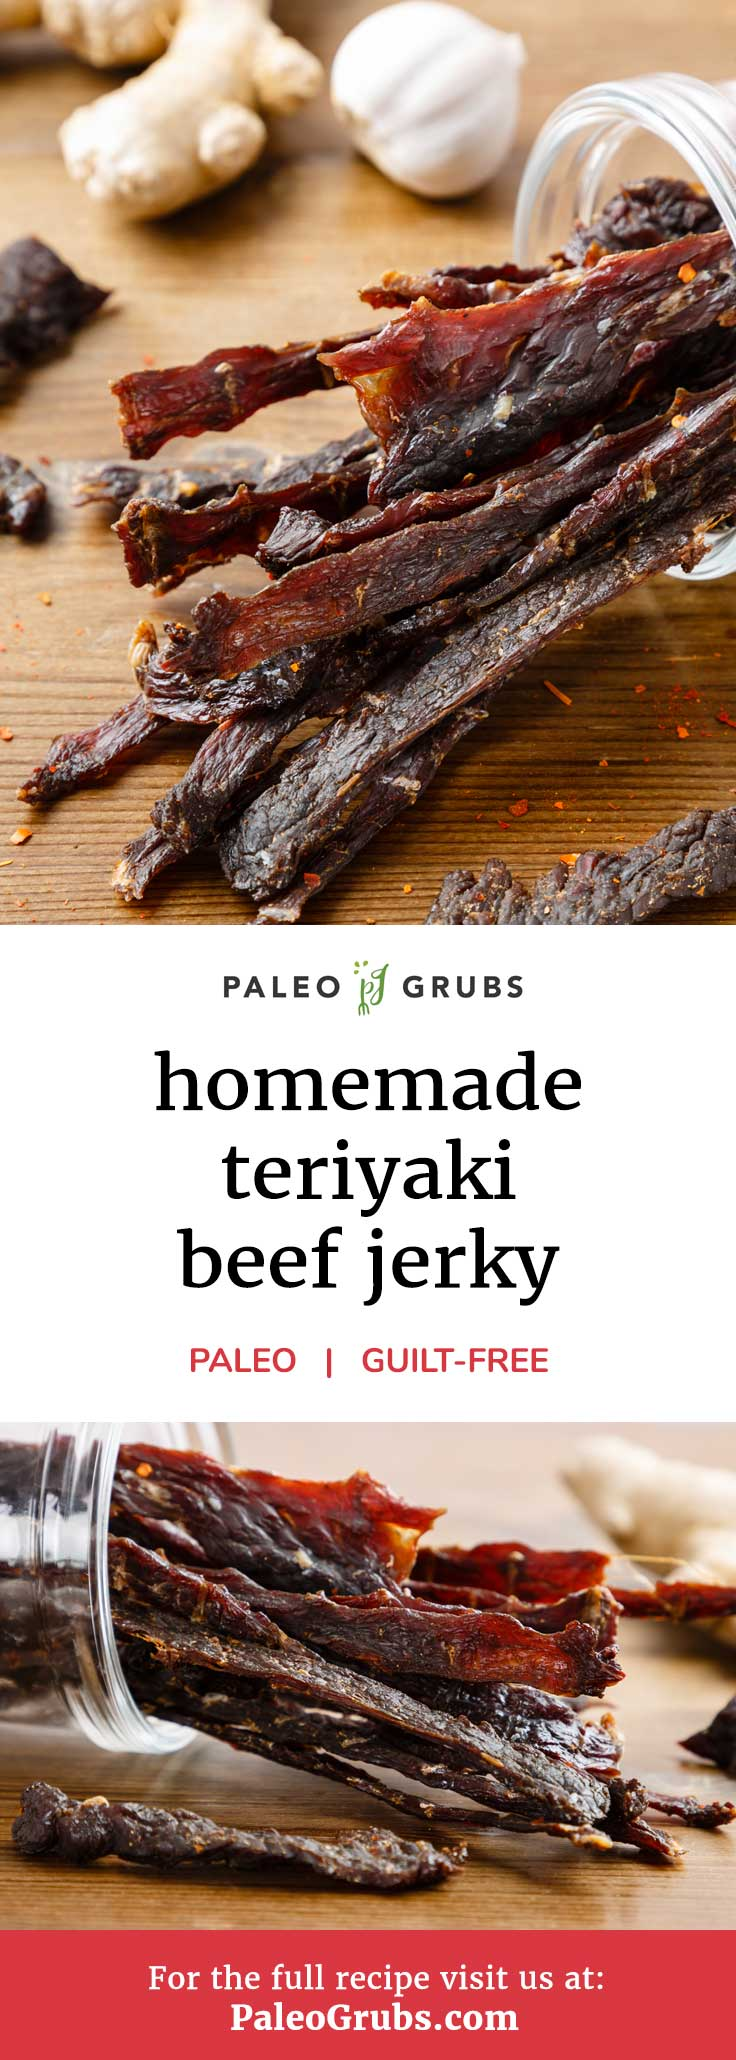 This homemade paleo beef jerky is so easy to make and absolutely the best! Definitely a must-try.